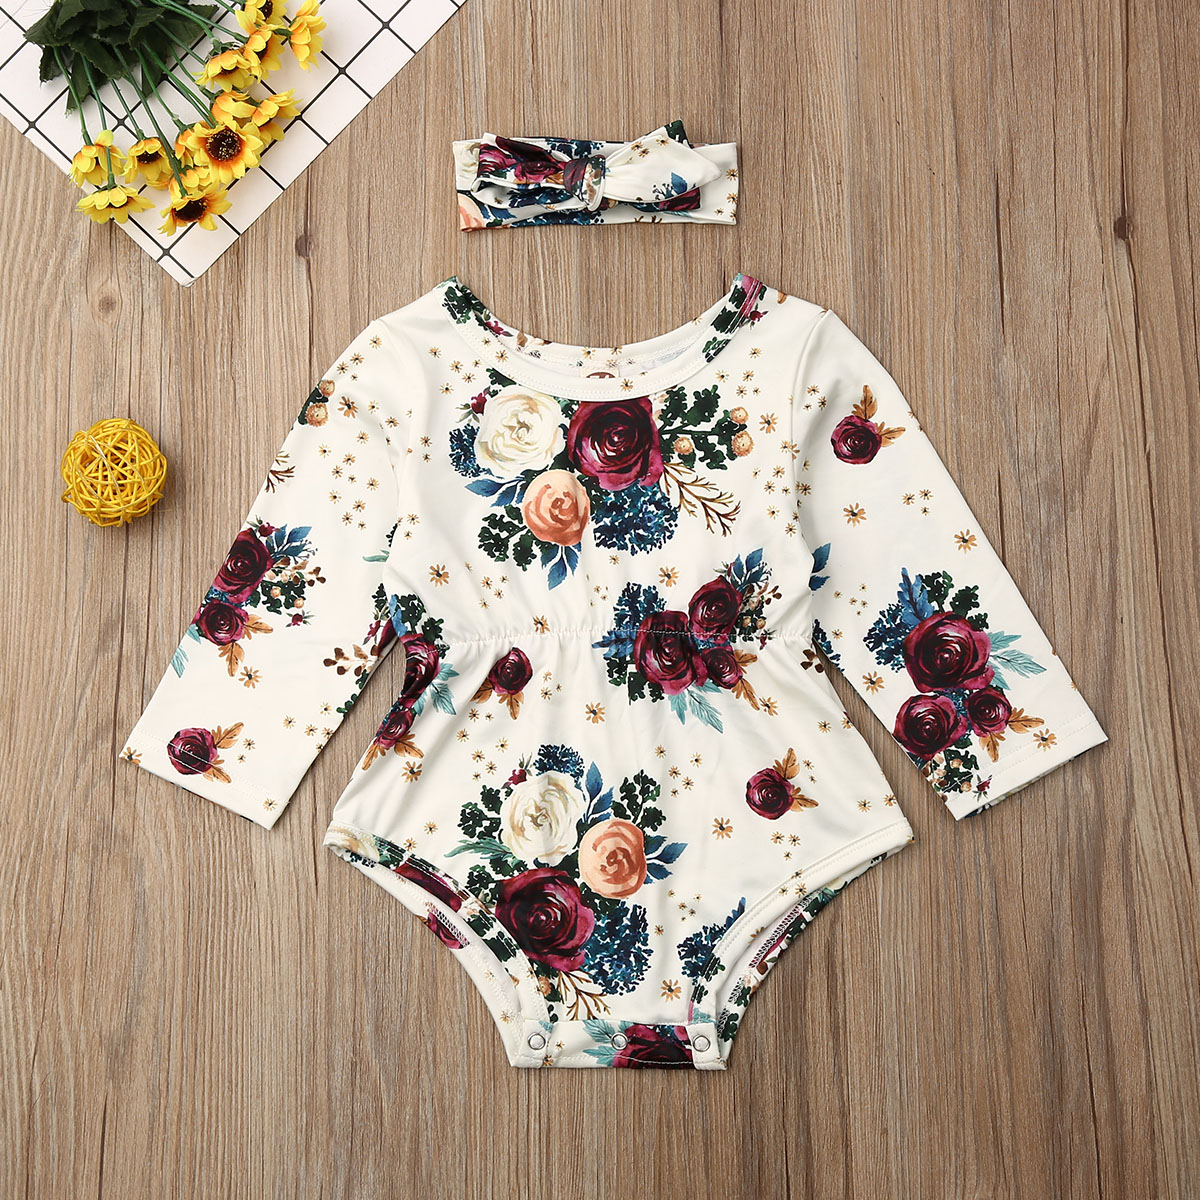 Pudcoco Newborn Baby Girl Clothes Flower Print Long Sleeve Cotton Romper Jumpsuit Headband 2Pcs Outfits Clothes